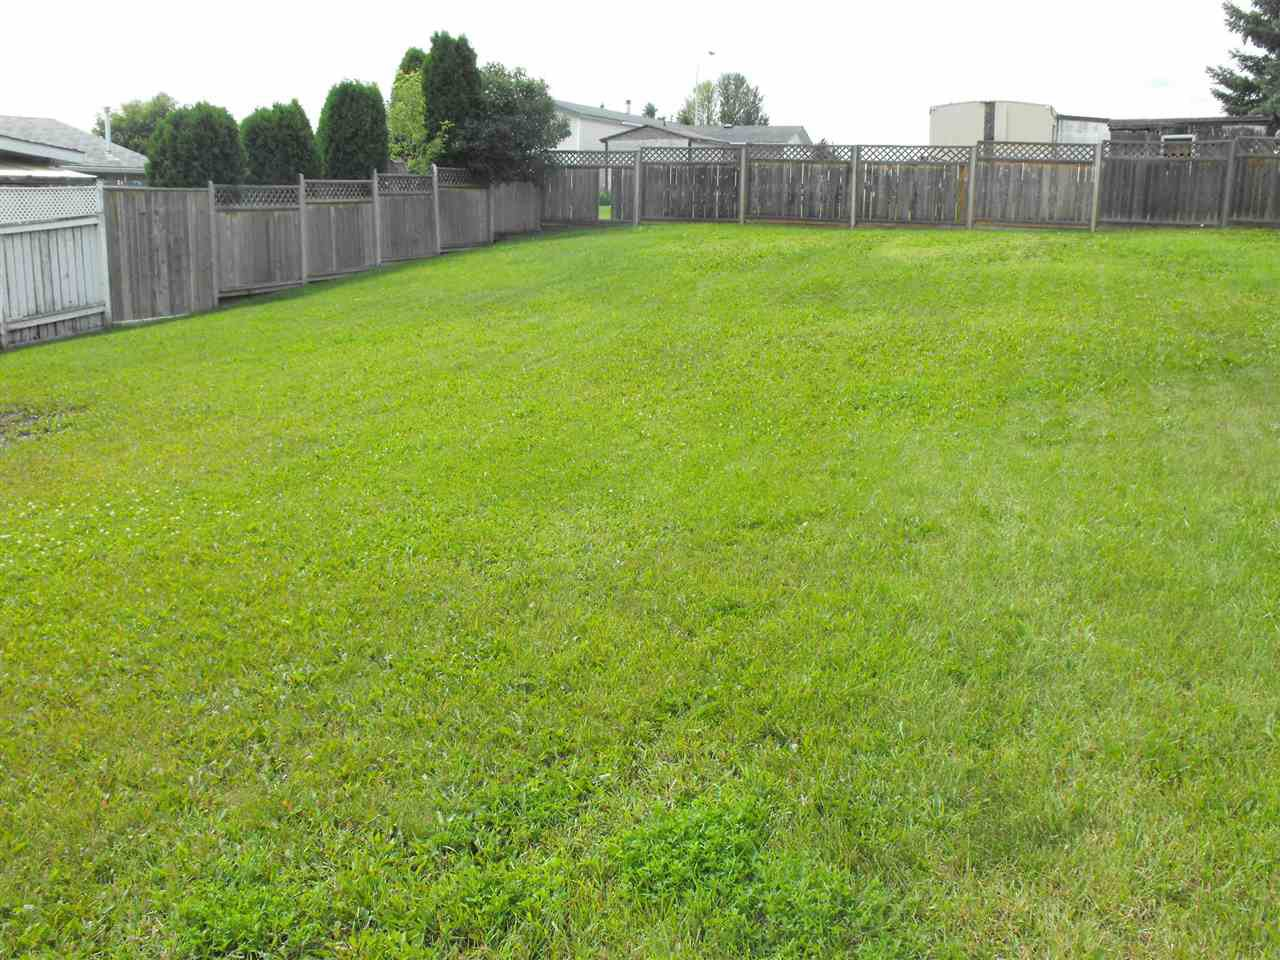 Main Photo: 5118 54a Street: Elk Point Vacant Lot for sale : MLS®# E4170276